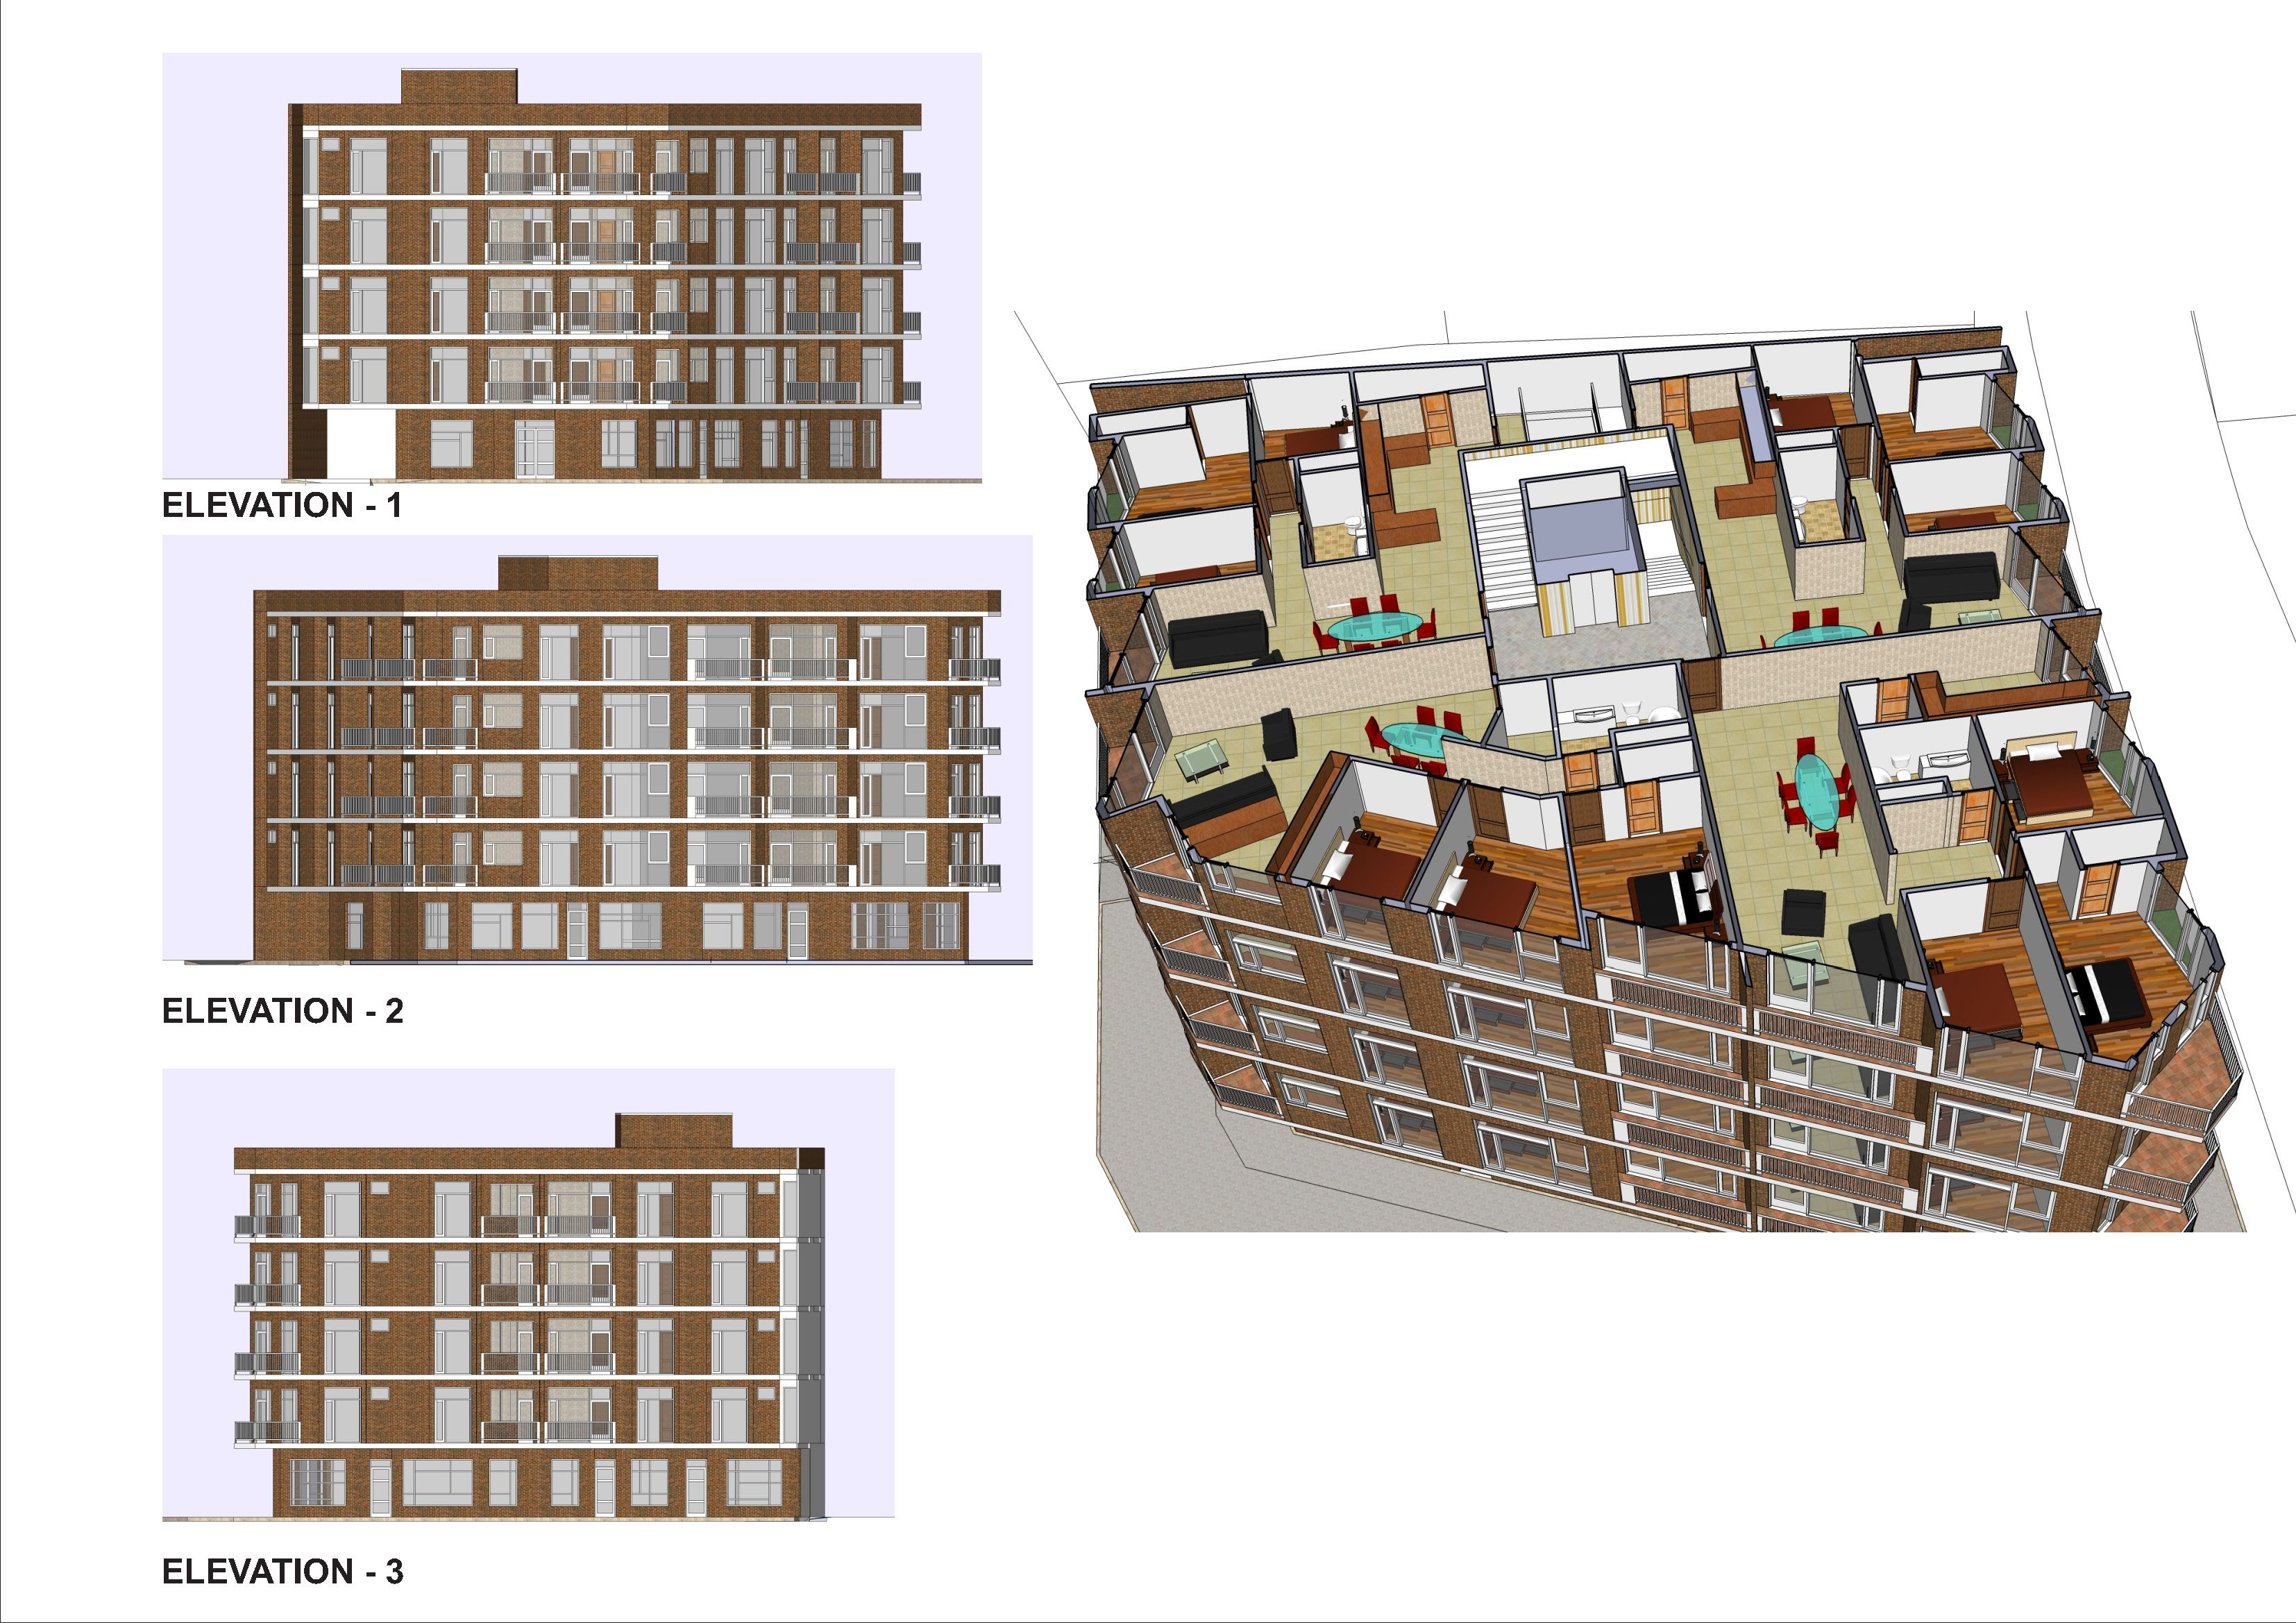 Apartment building plans location aksaray turkey new for Appartment plans